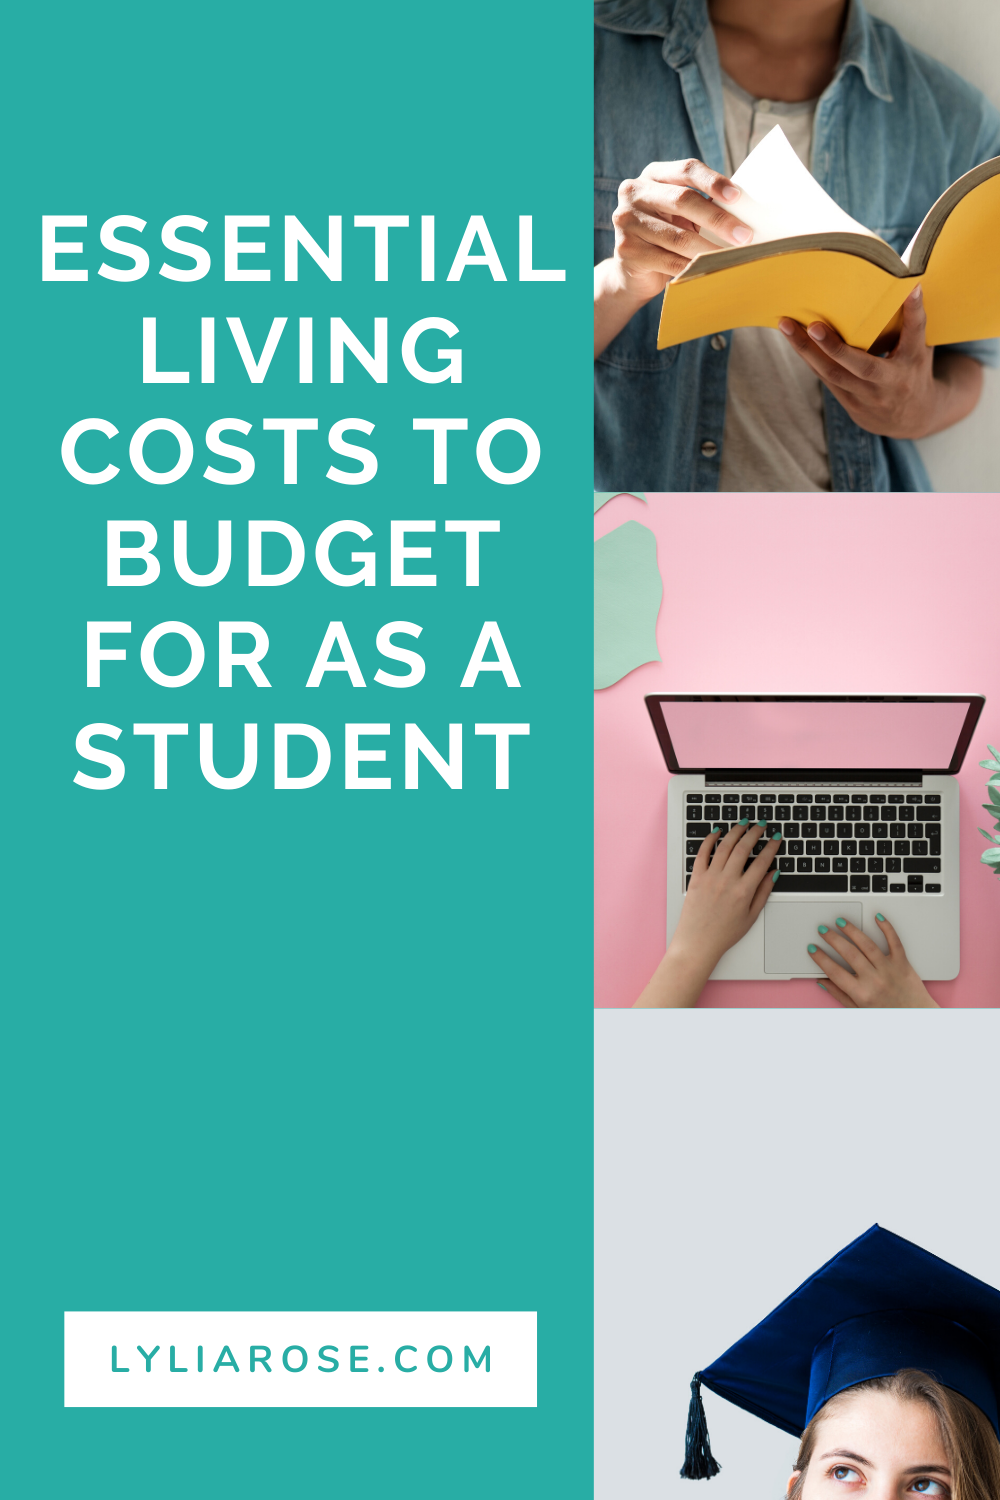 Essential living costs to budget for as a student (2)